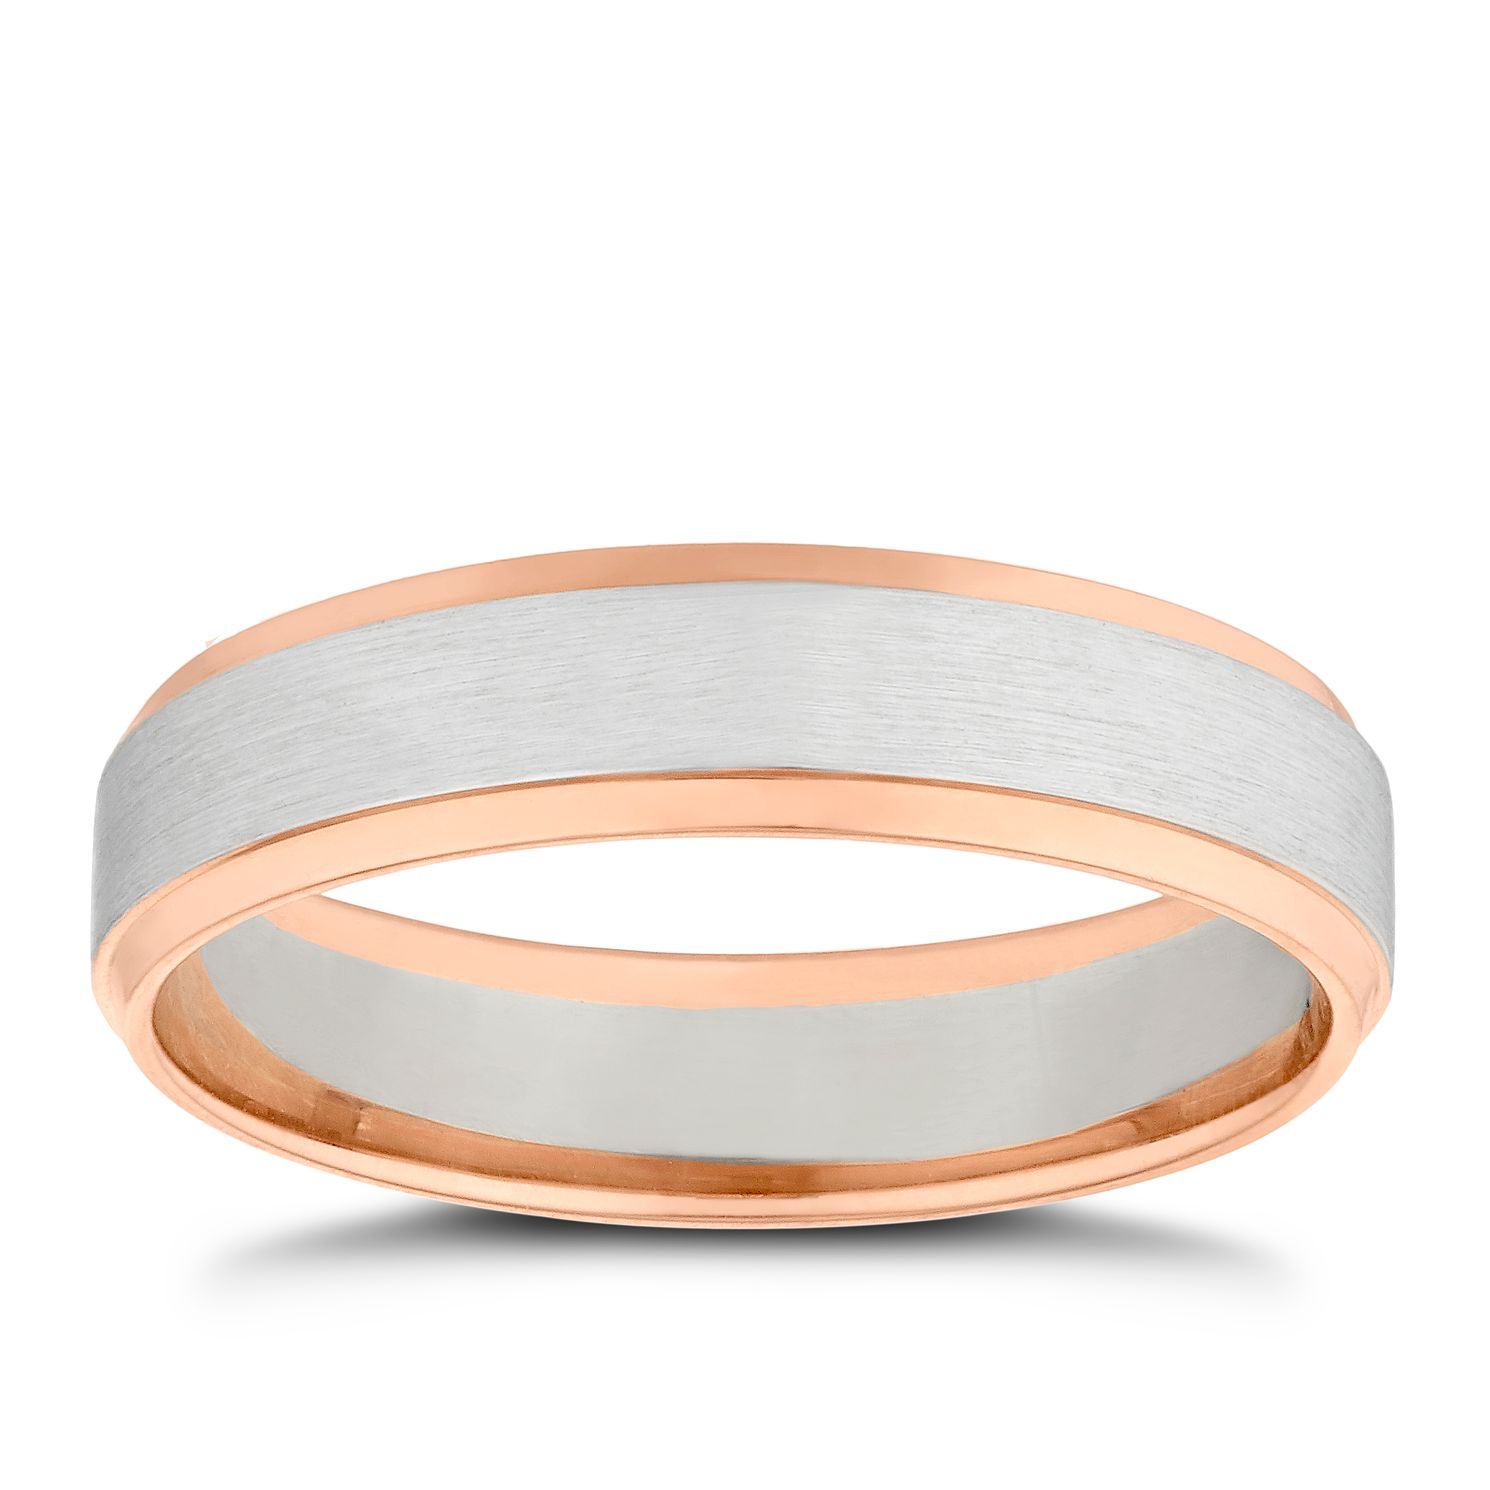 18ct Two Colour Gold Bevelled Edge Wedding Ring - Product number 4854047